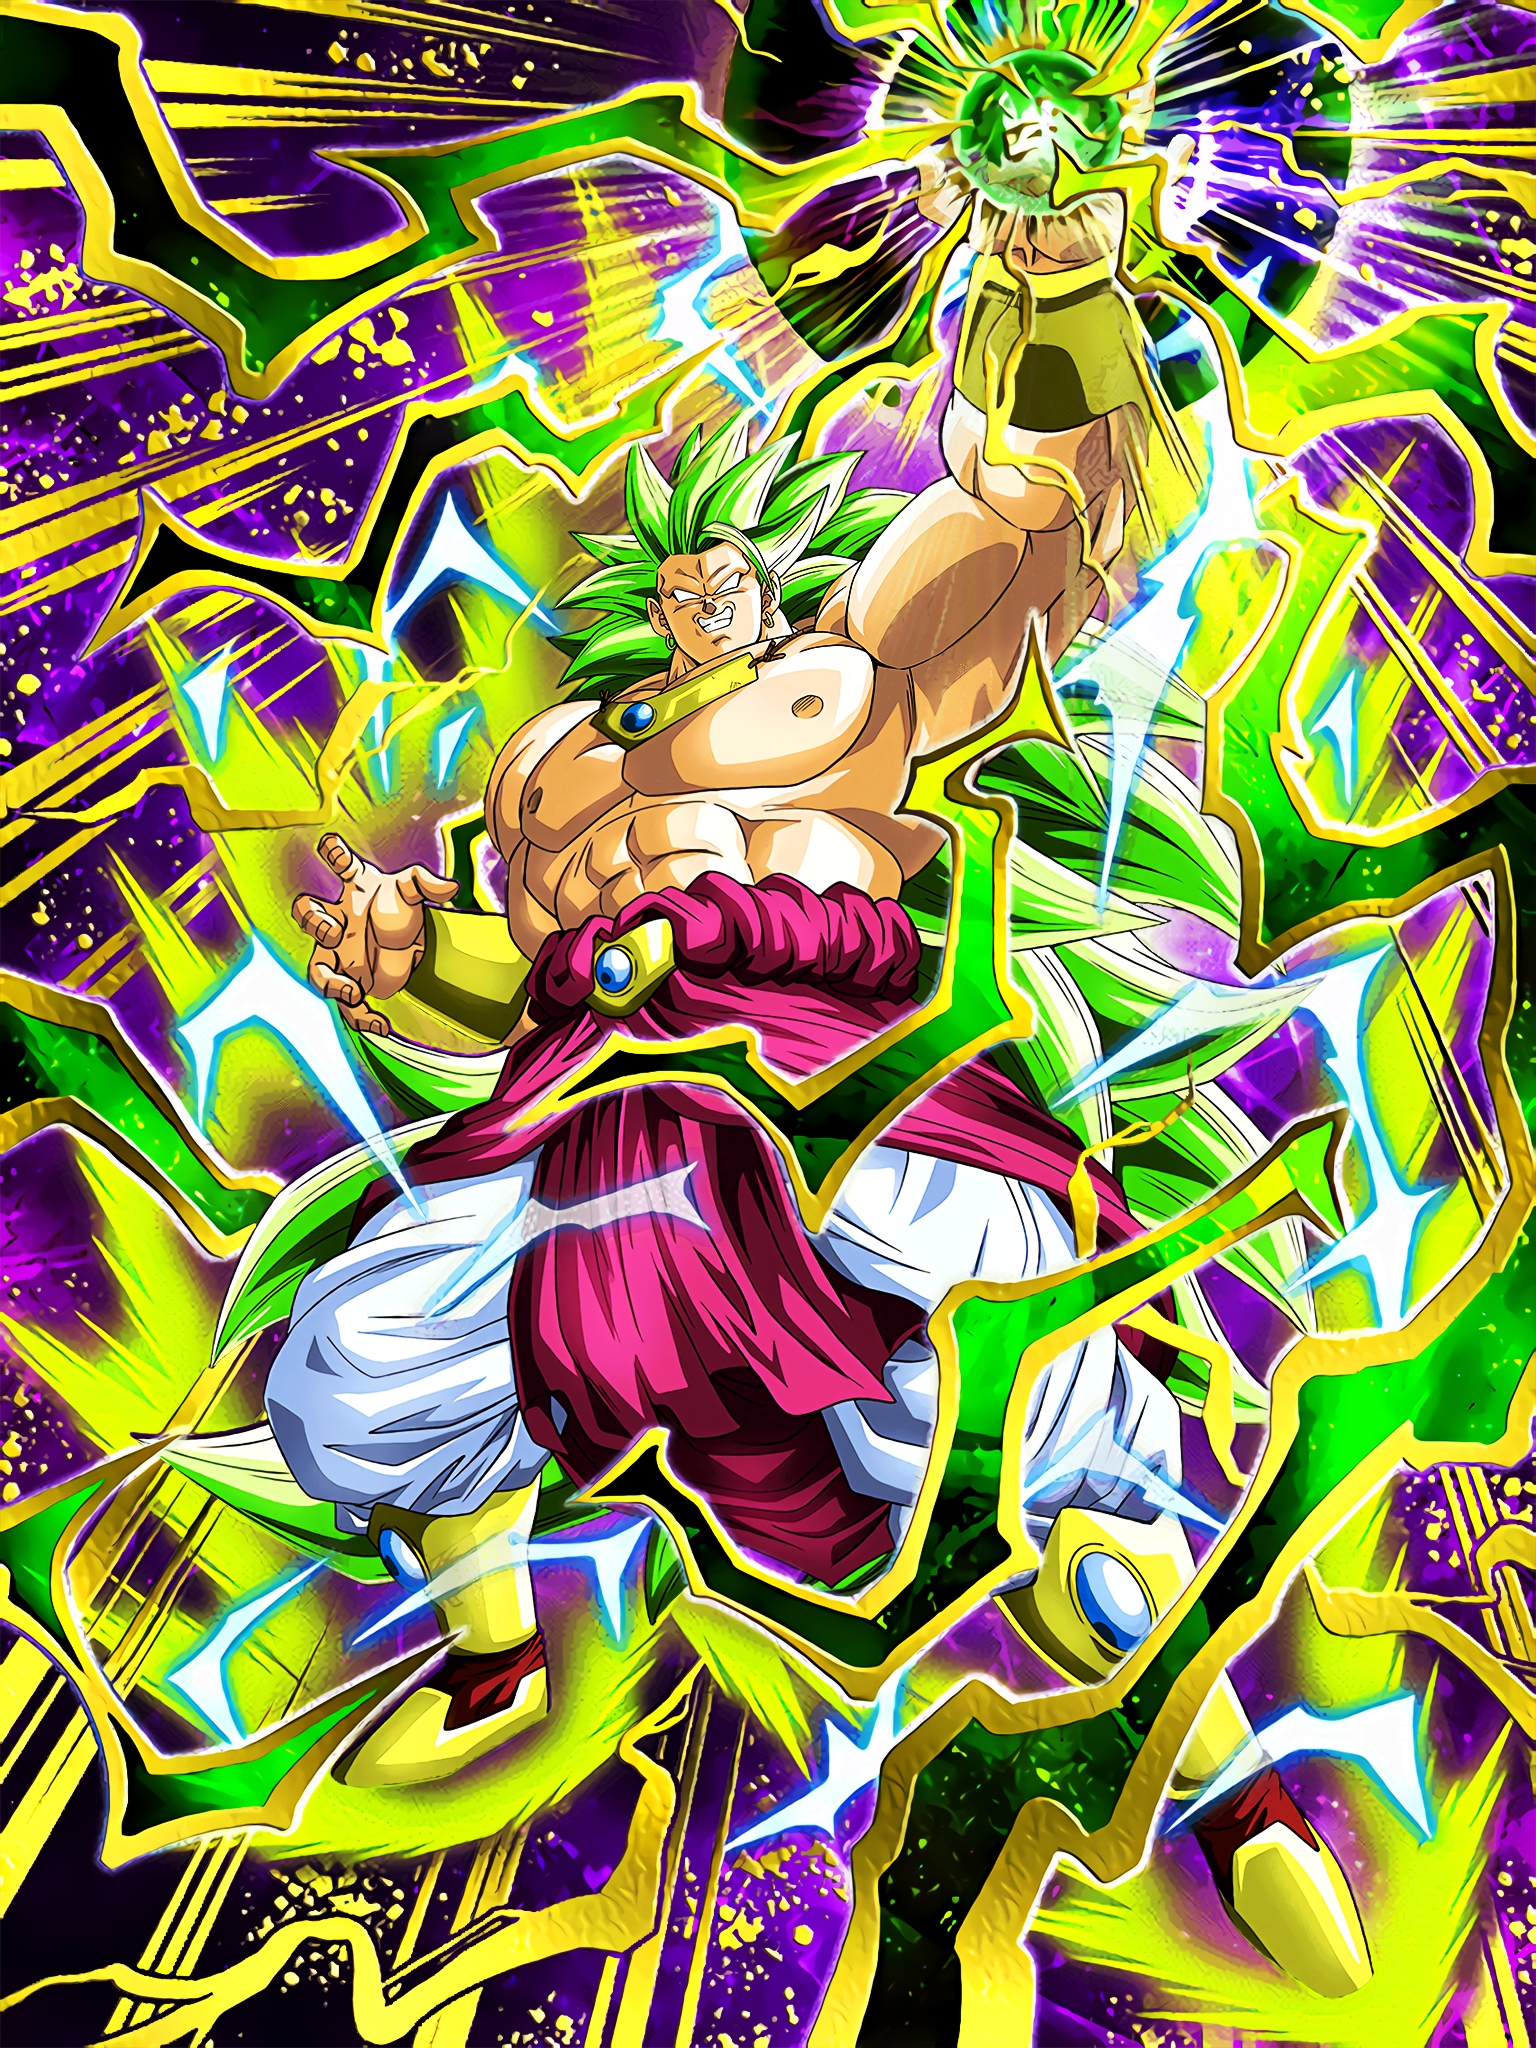 Mythic Evolution Super Saiyan 3 Broly Art (Dragon Ball Z Dokkan Battle).jpg